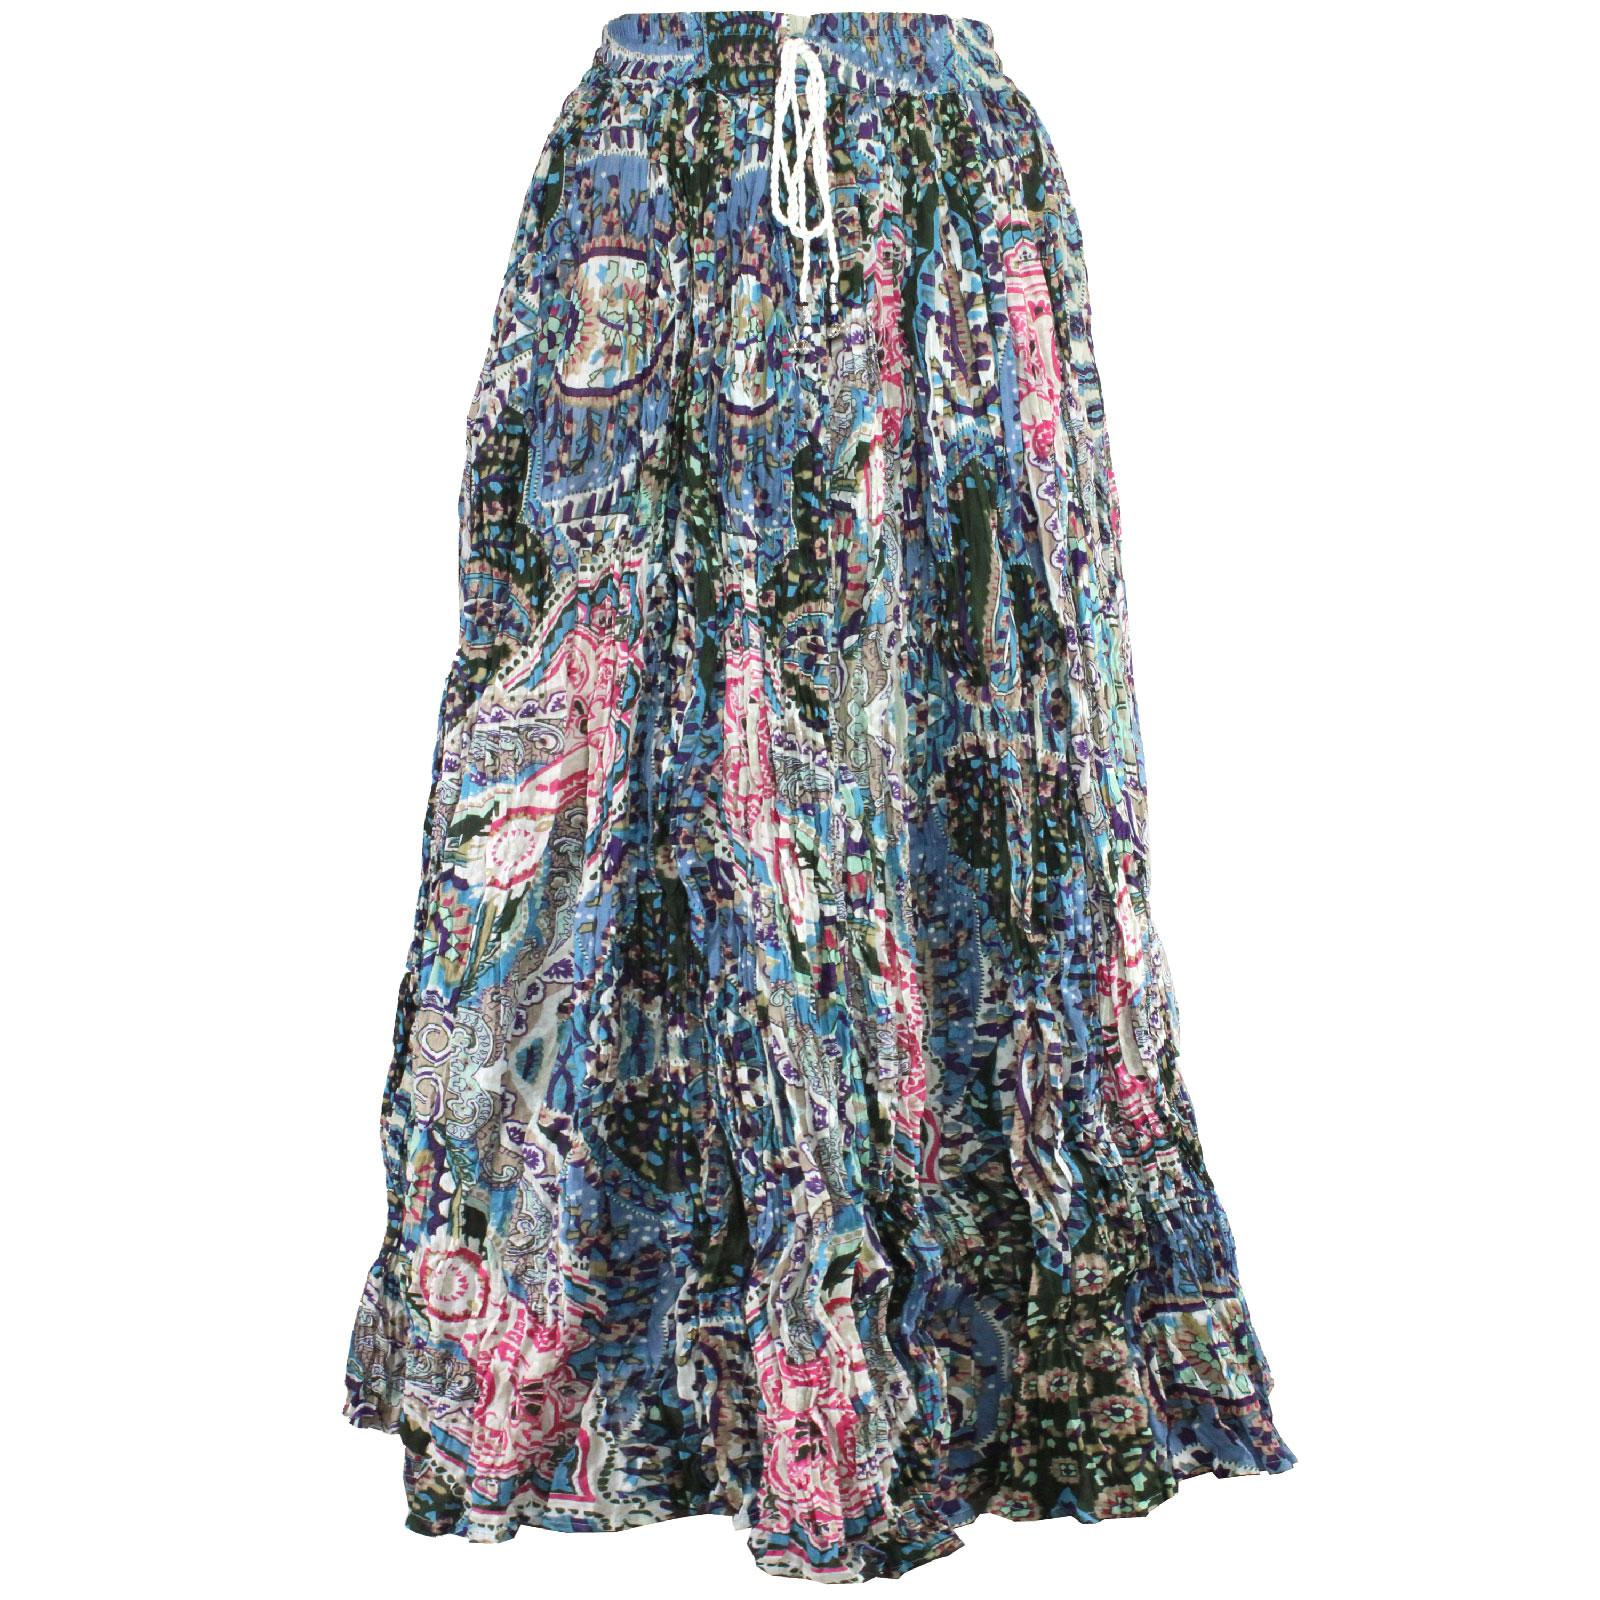 Wholesale Skirts - Long Cotton Broomstick with Pocket 503 Print #19B -